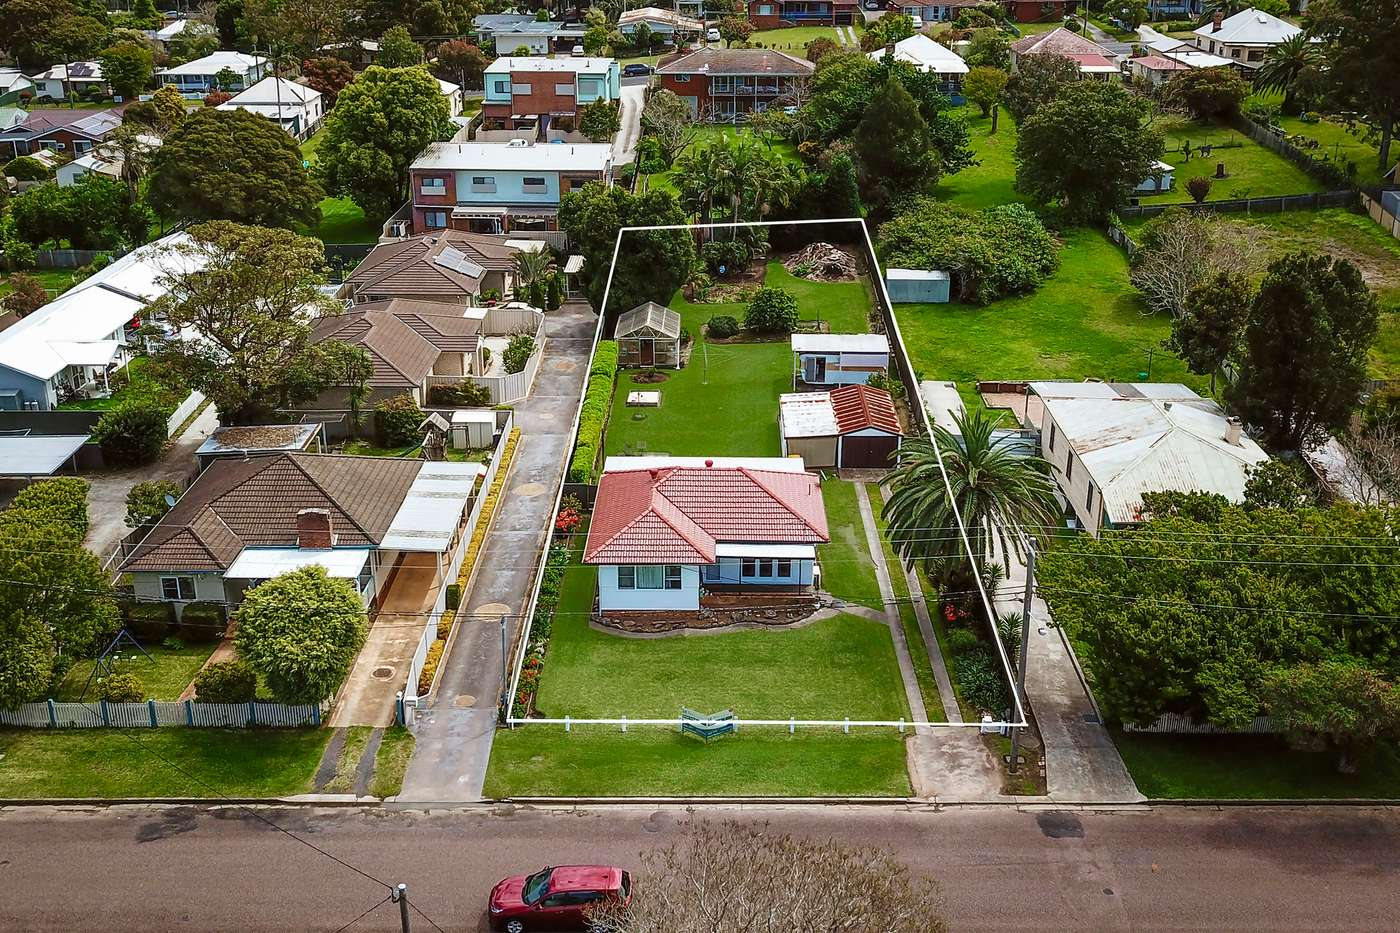 Main view of Homely house listing, 10 Leppington Street, Wyong, NSW 2259